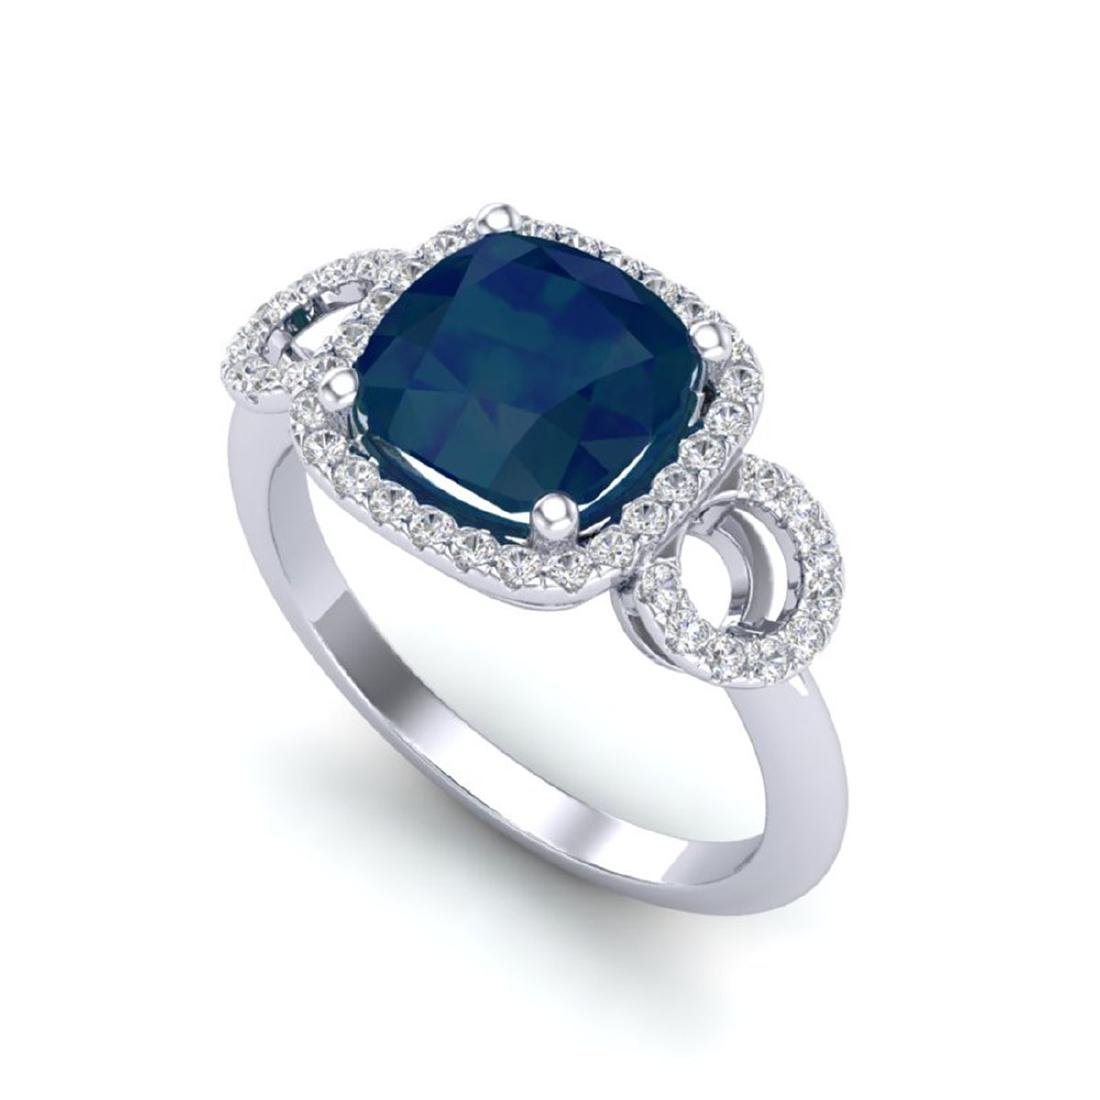 3.15 CTW Sapphire & Micro VS/SI Diamond Ring 18K White - 2